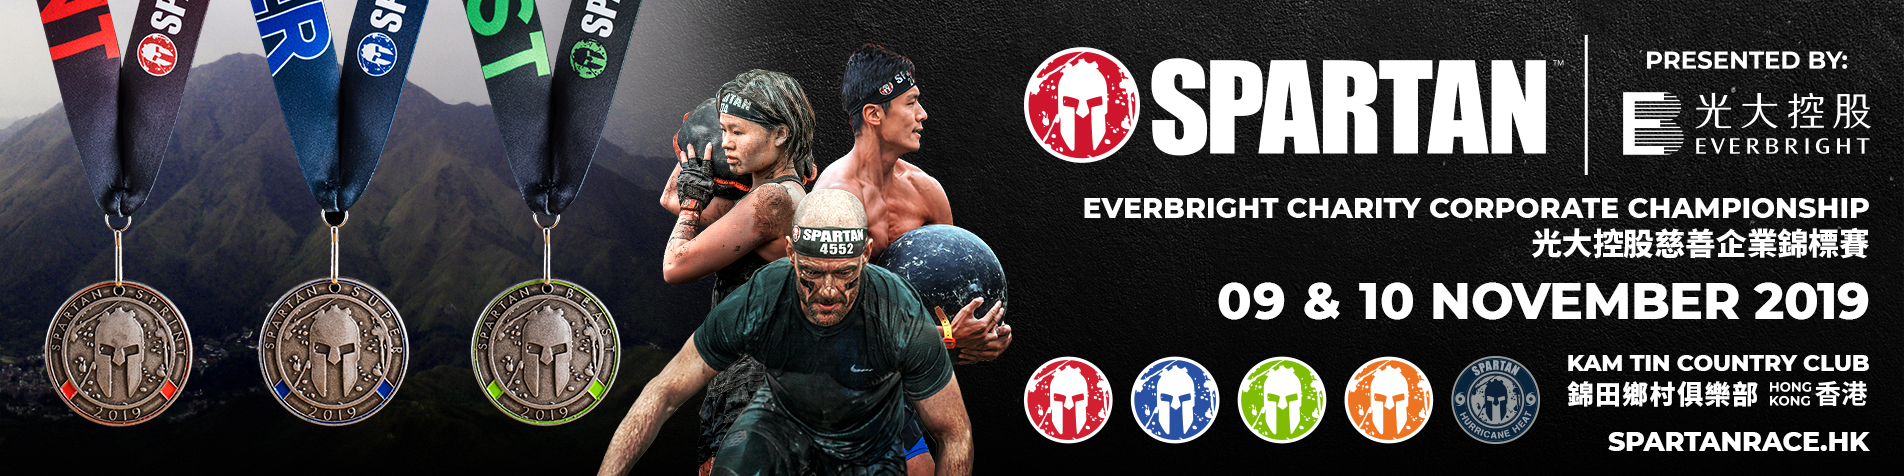 Spartan Everbright Corporate Championship 2019